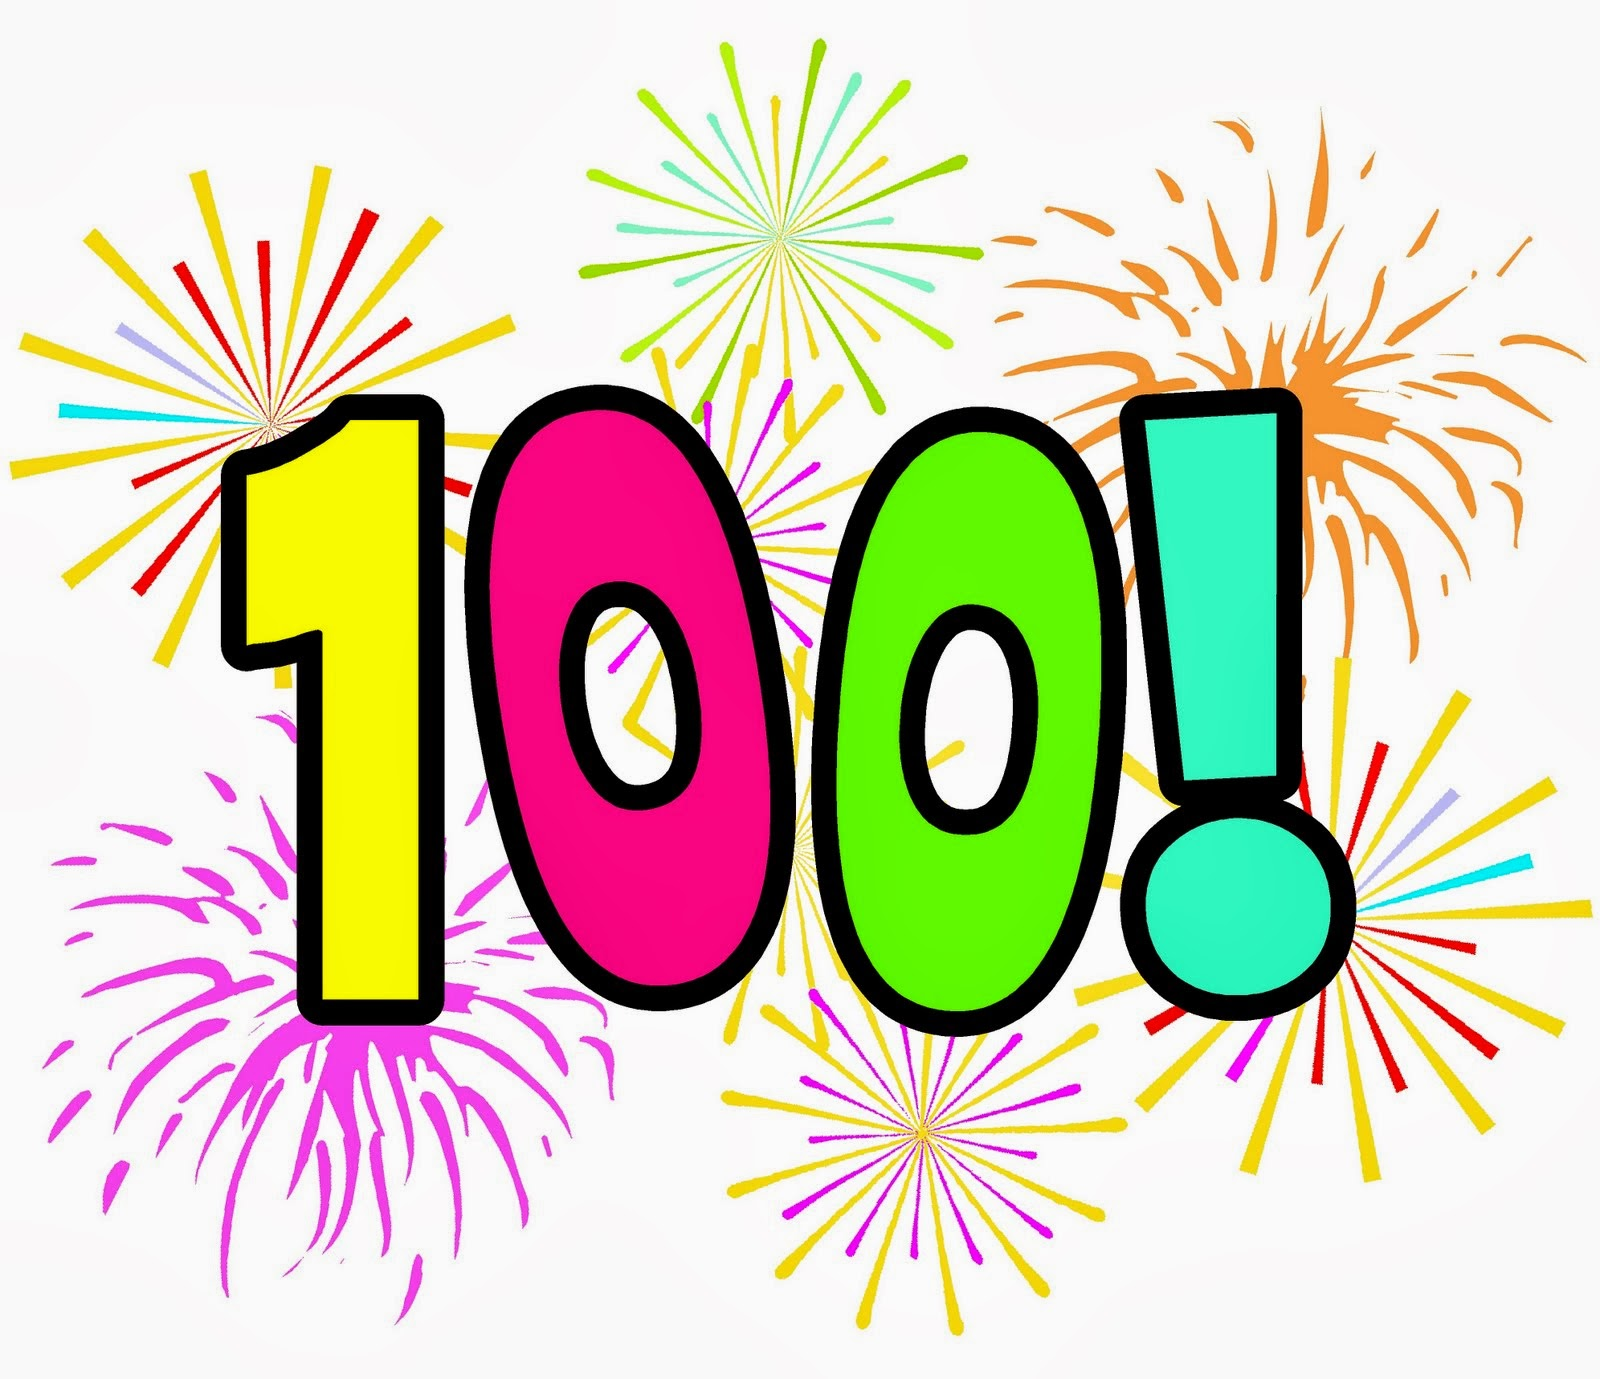 100th of clipart. Dudes who love